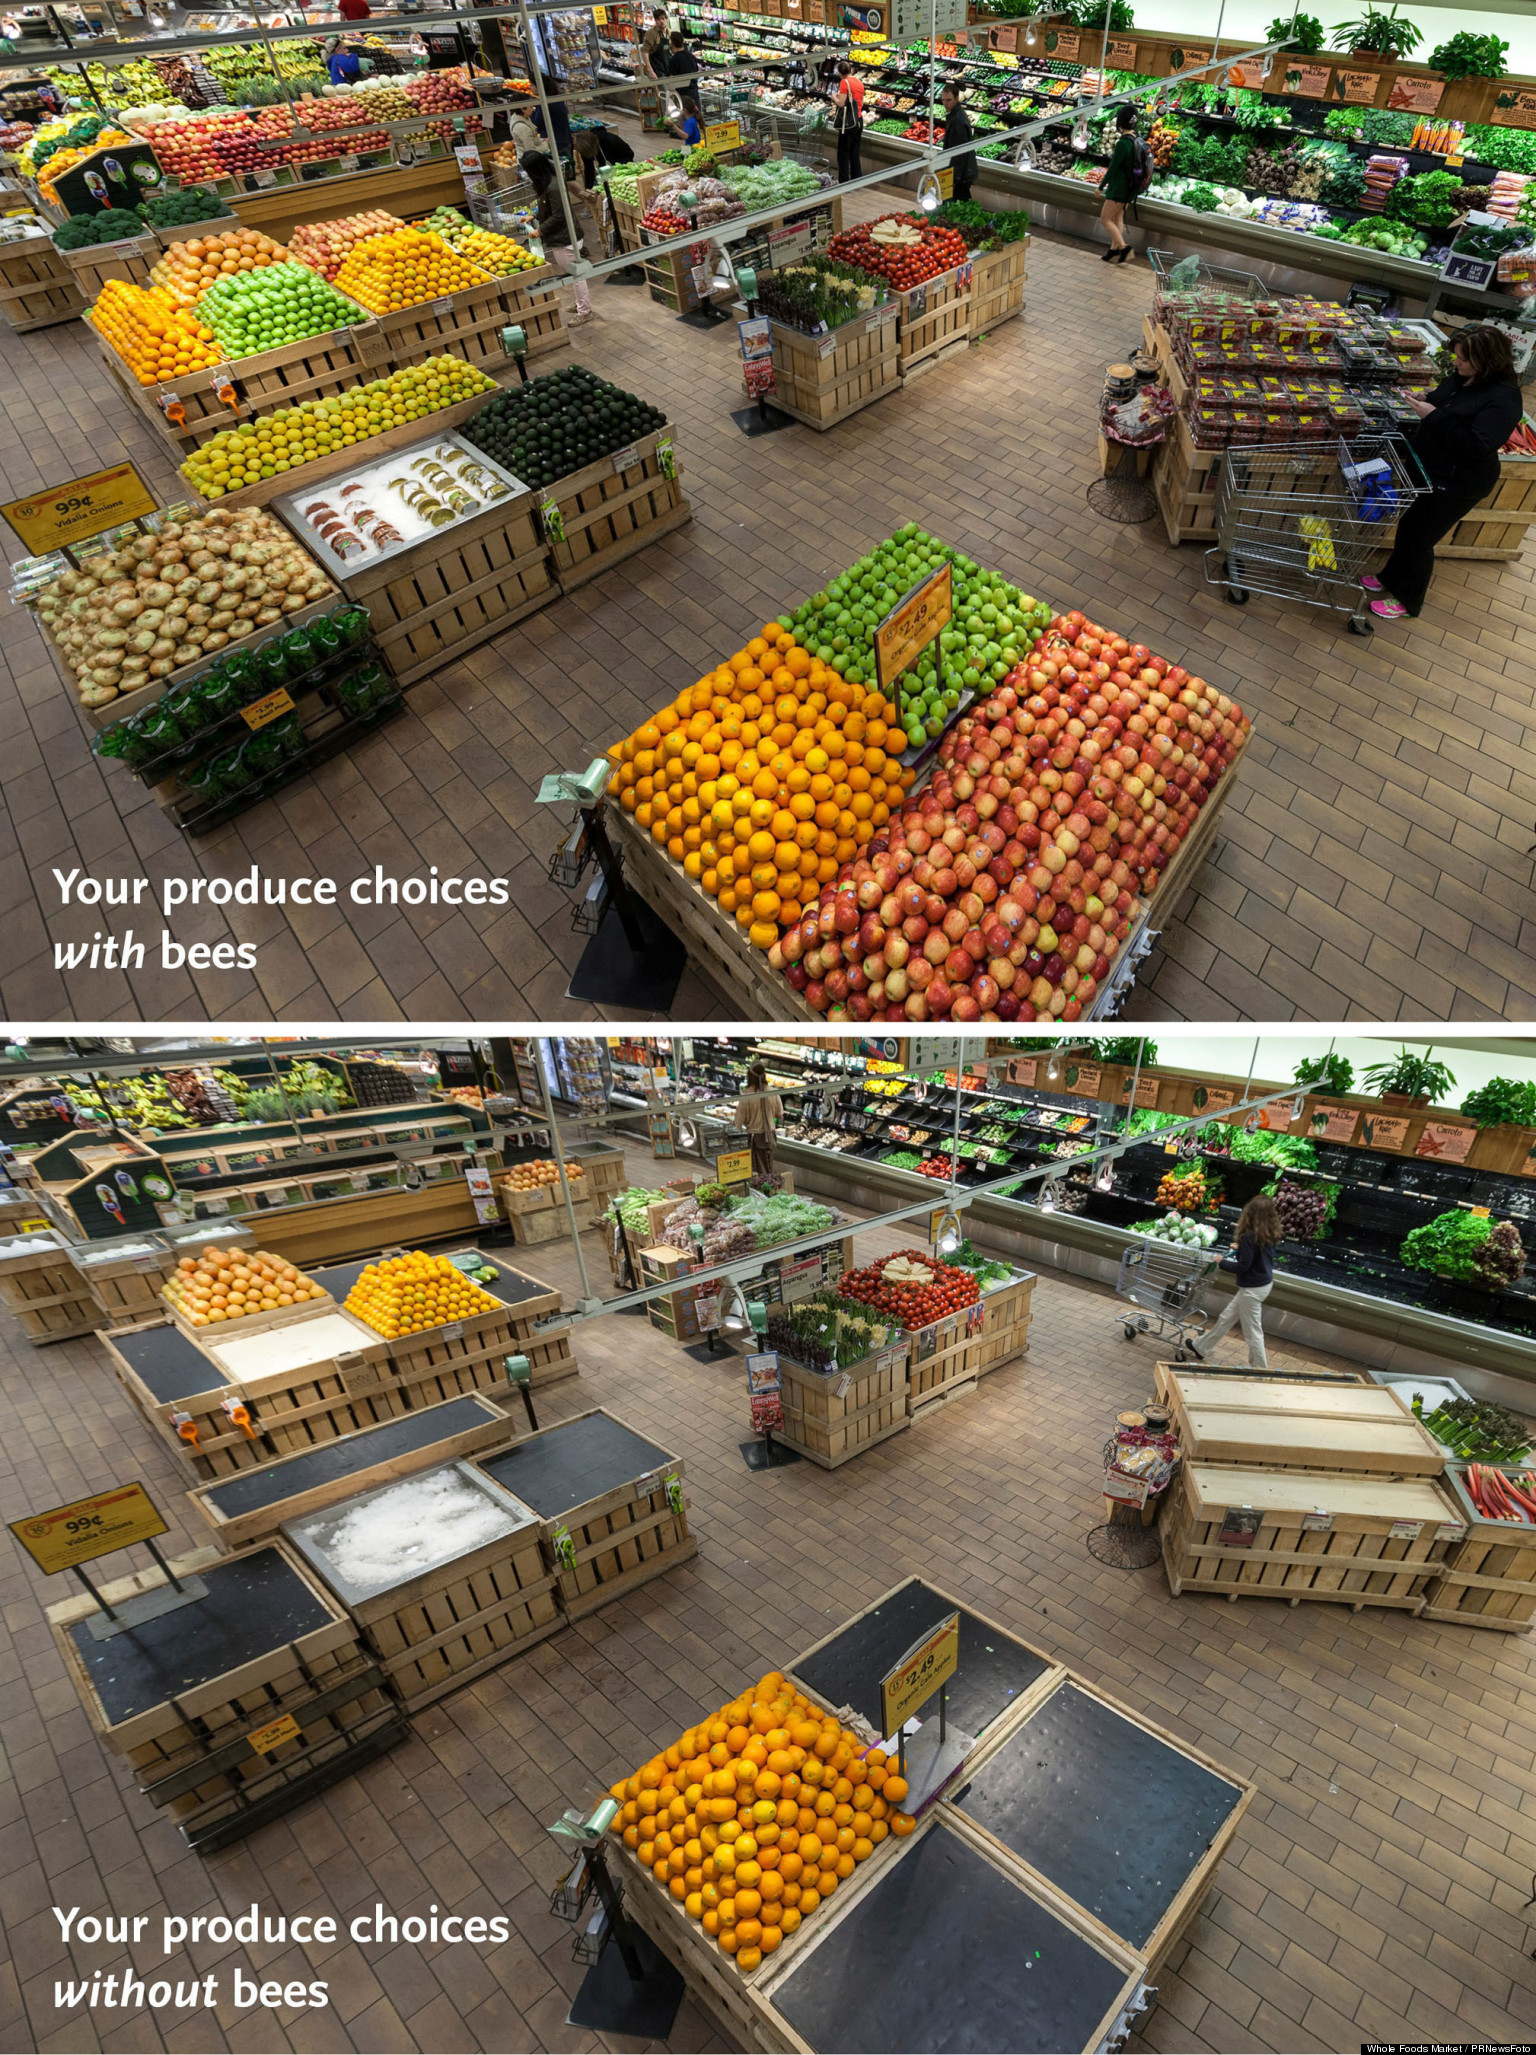 LOOK: This Is Your Supermarket Without Bees